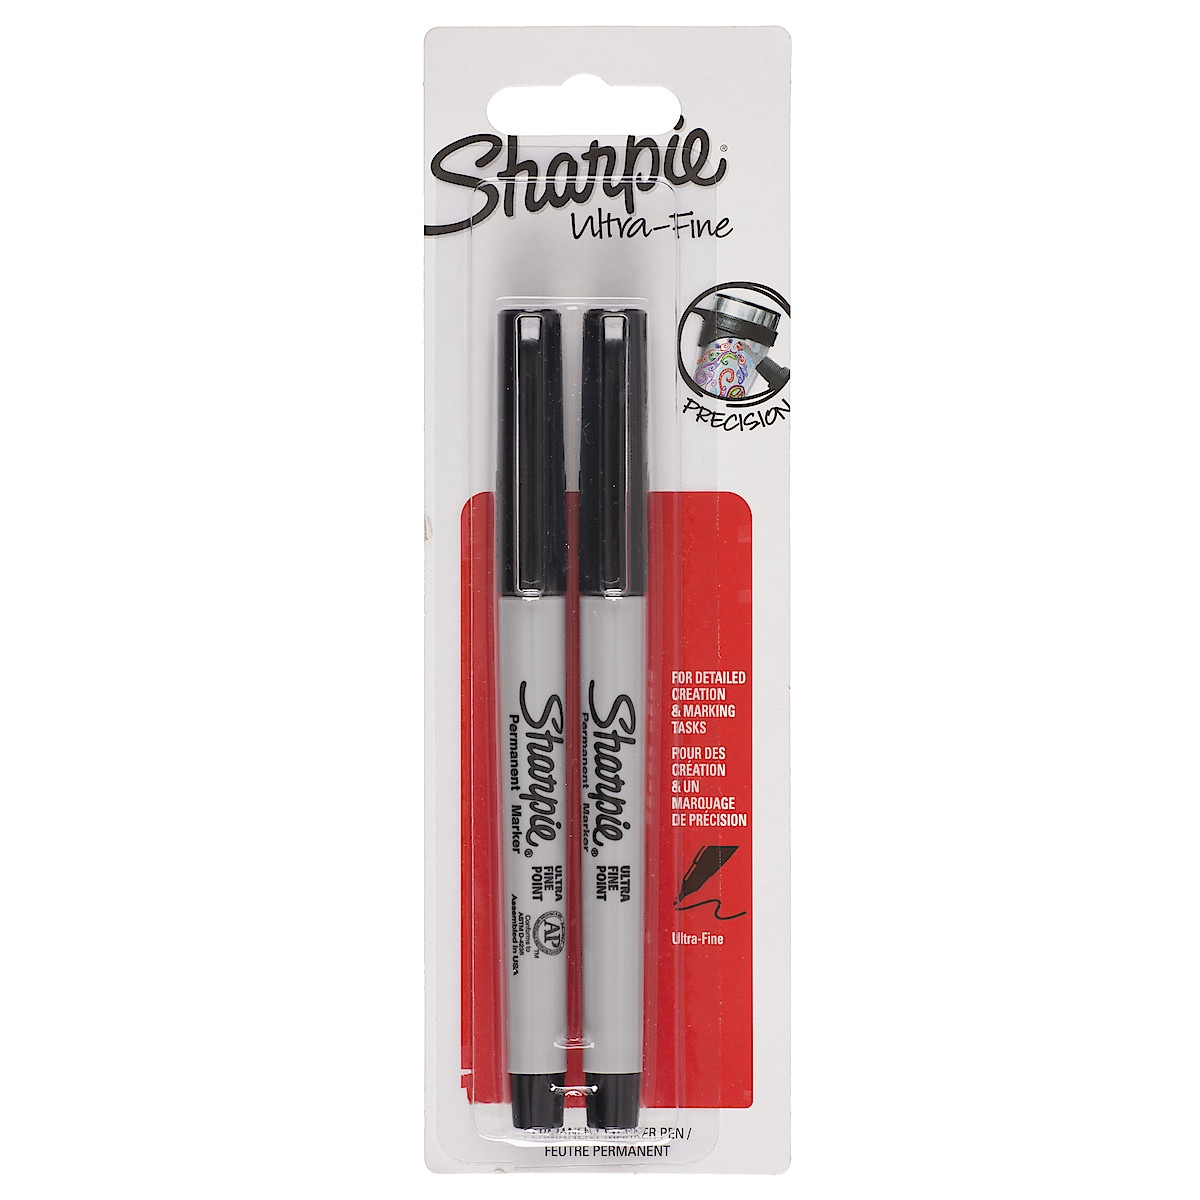 Tuschpennor Sharpie Svart Ultra Fine, 2-pack